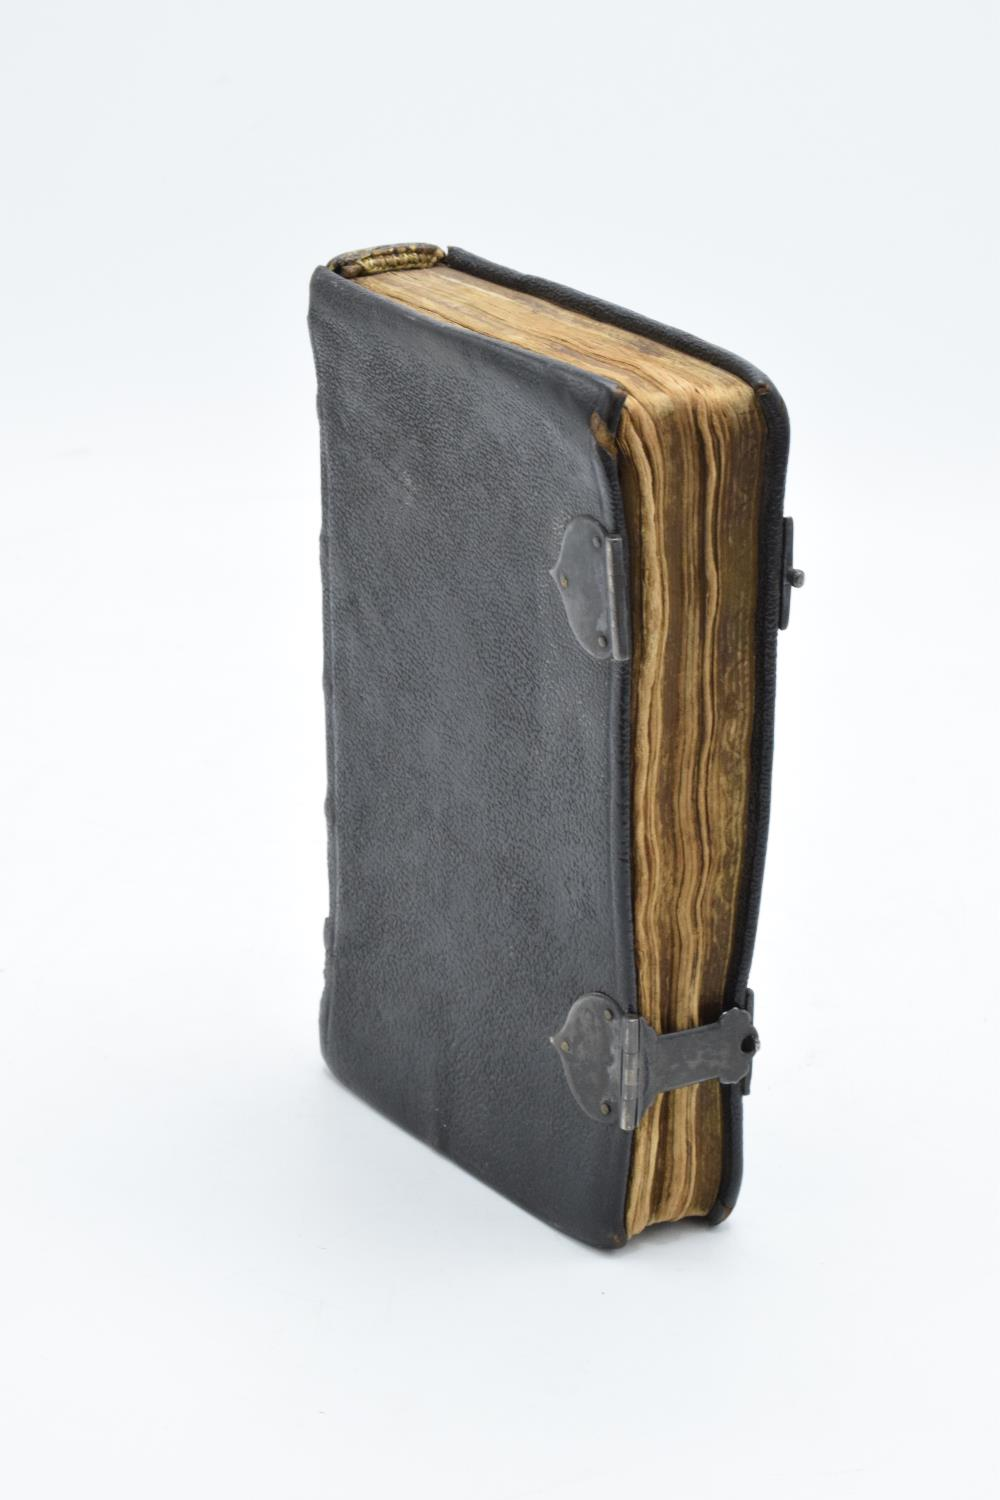 'The Book of Common-Prayer and Adminiftration of the Sacraments and other Rites and Ceremonies of